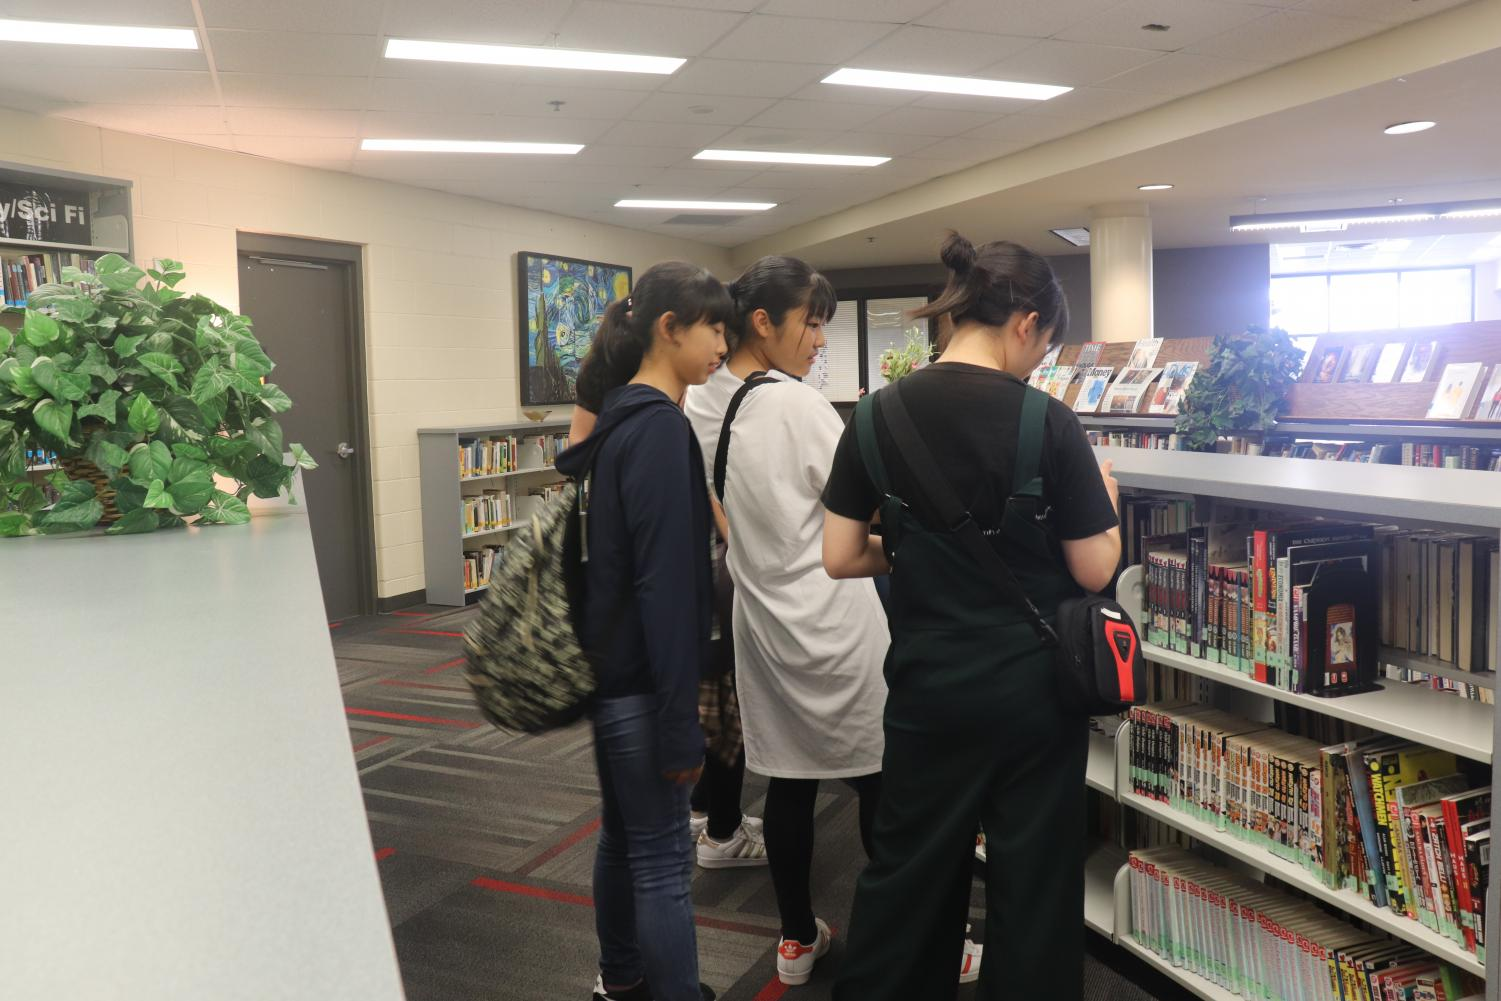 Japanese+students+visit+the+library+in+Elkhorn.+The+Elkhorn+High+library+contains+more+books+than+most+Japanese+high+schools.